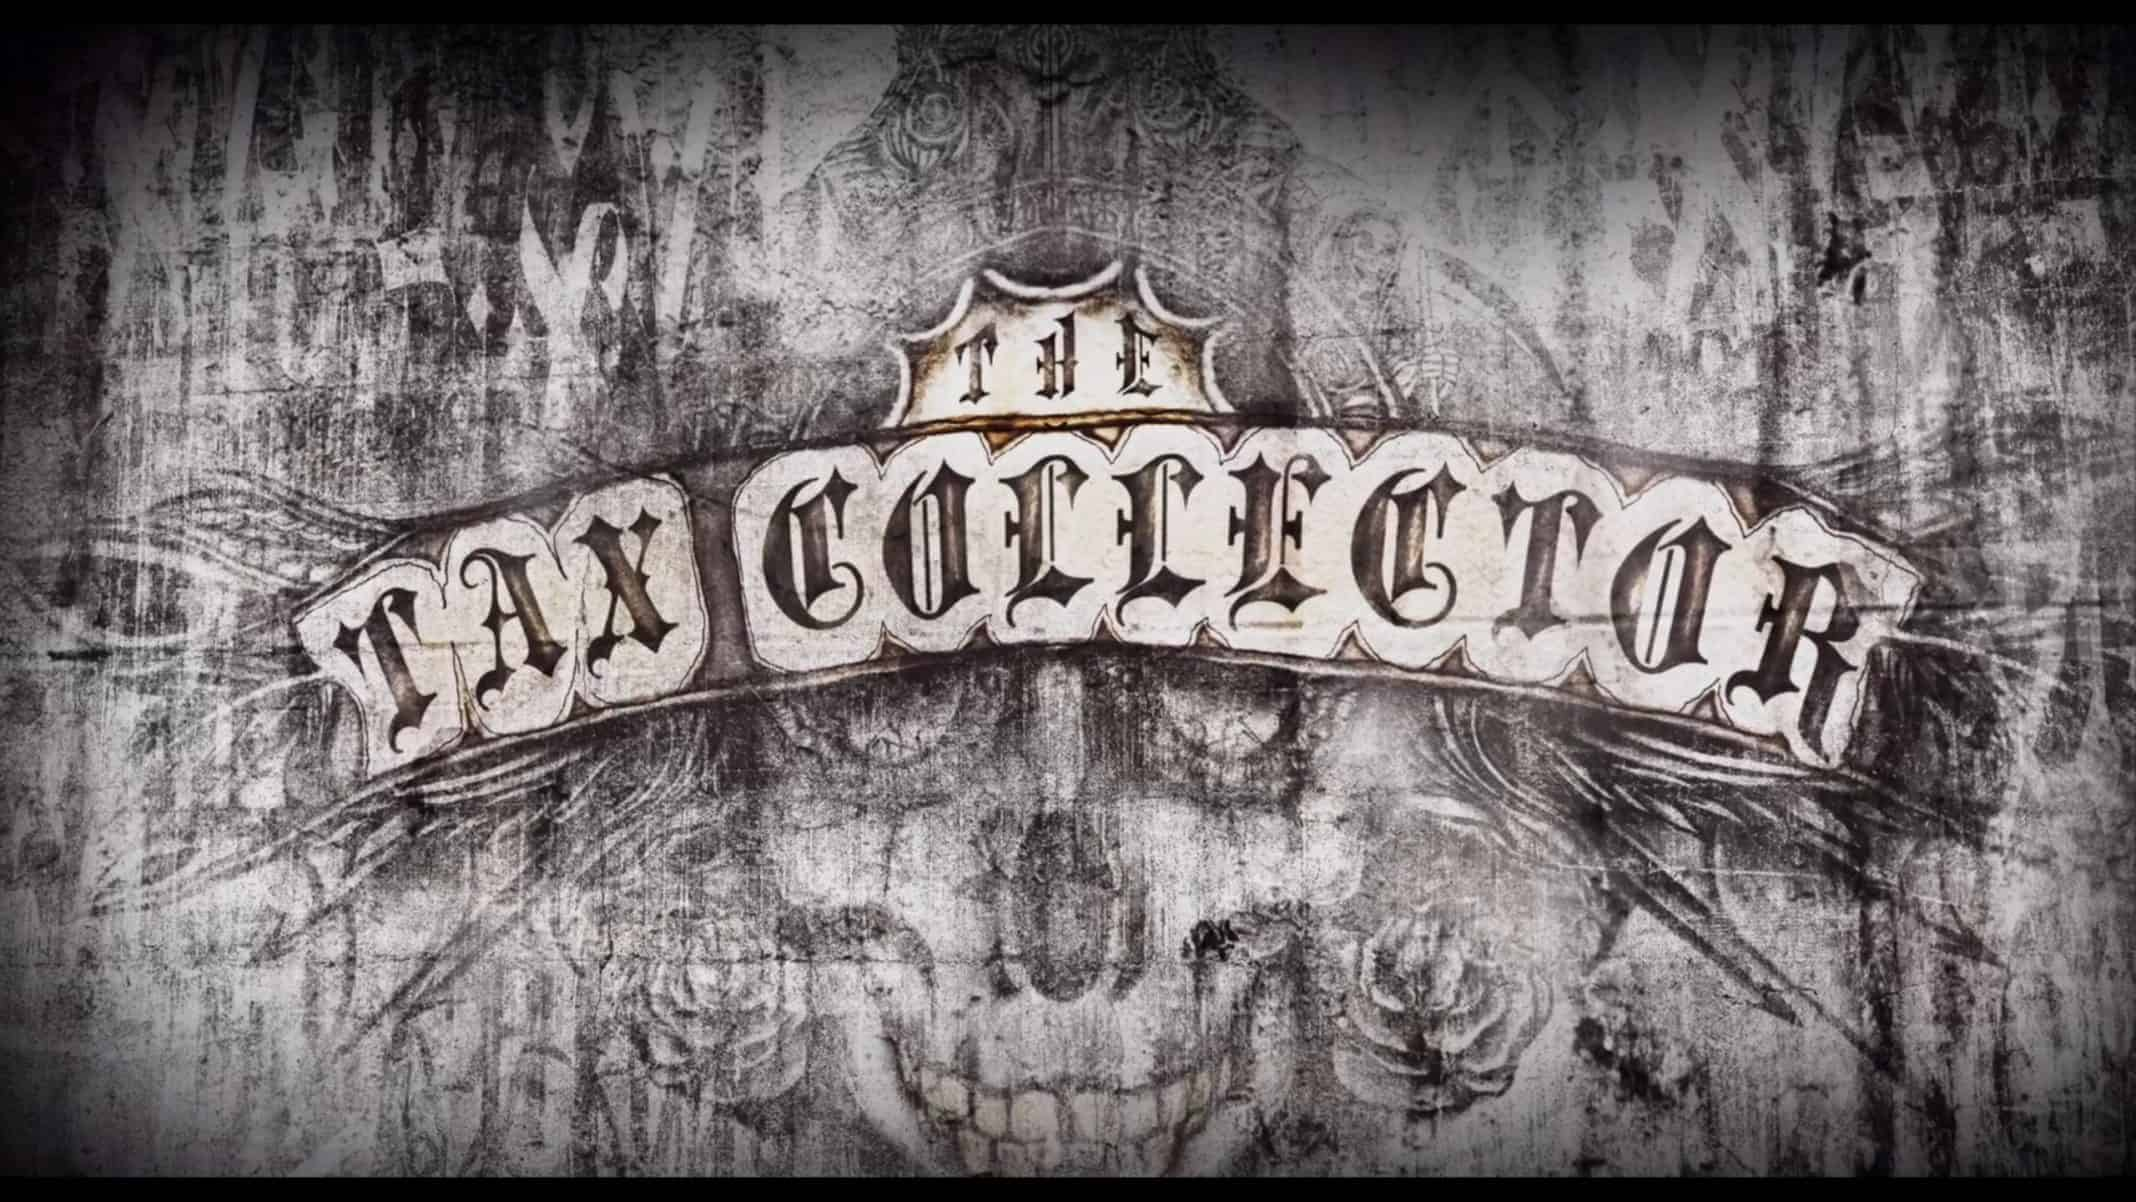 Title Card - The Tax Collector (2020)